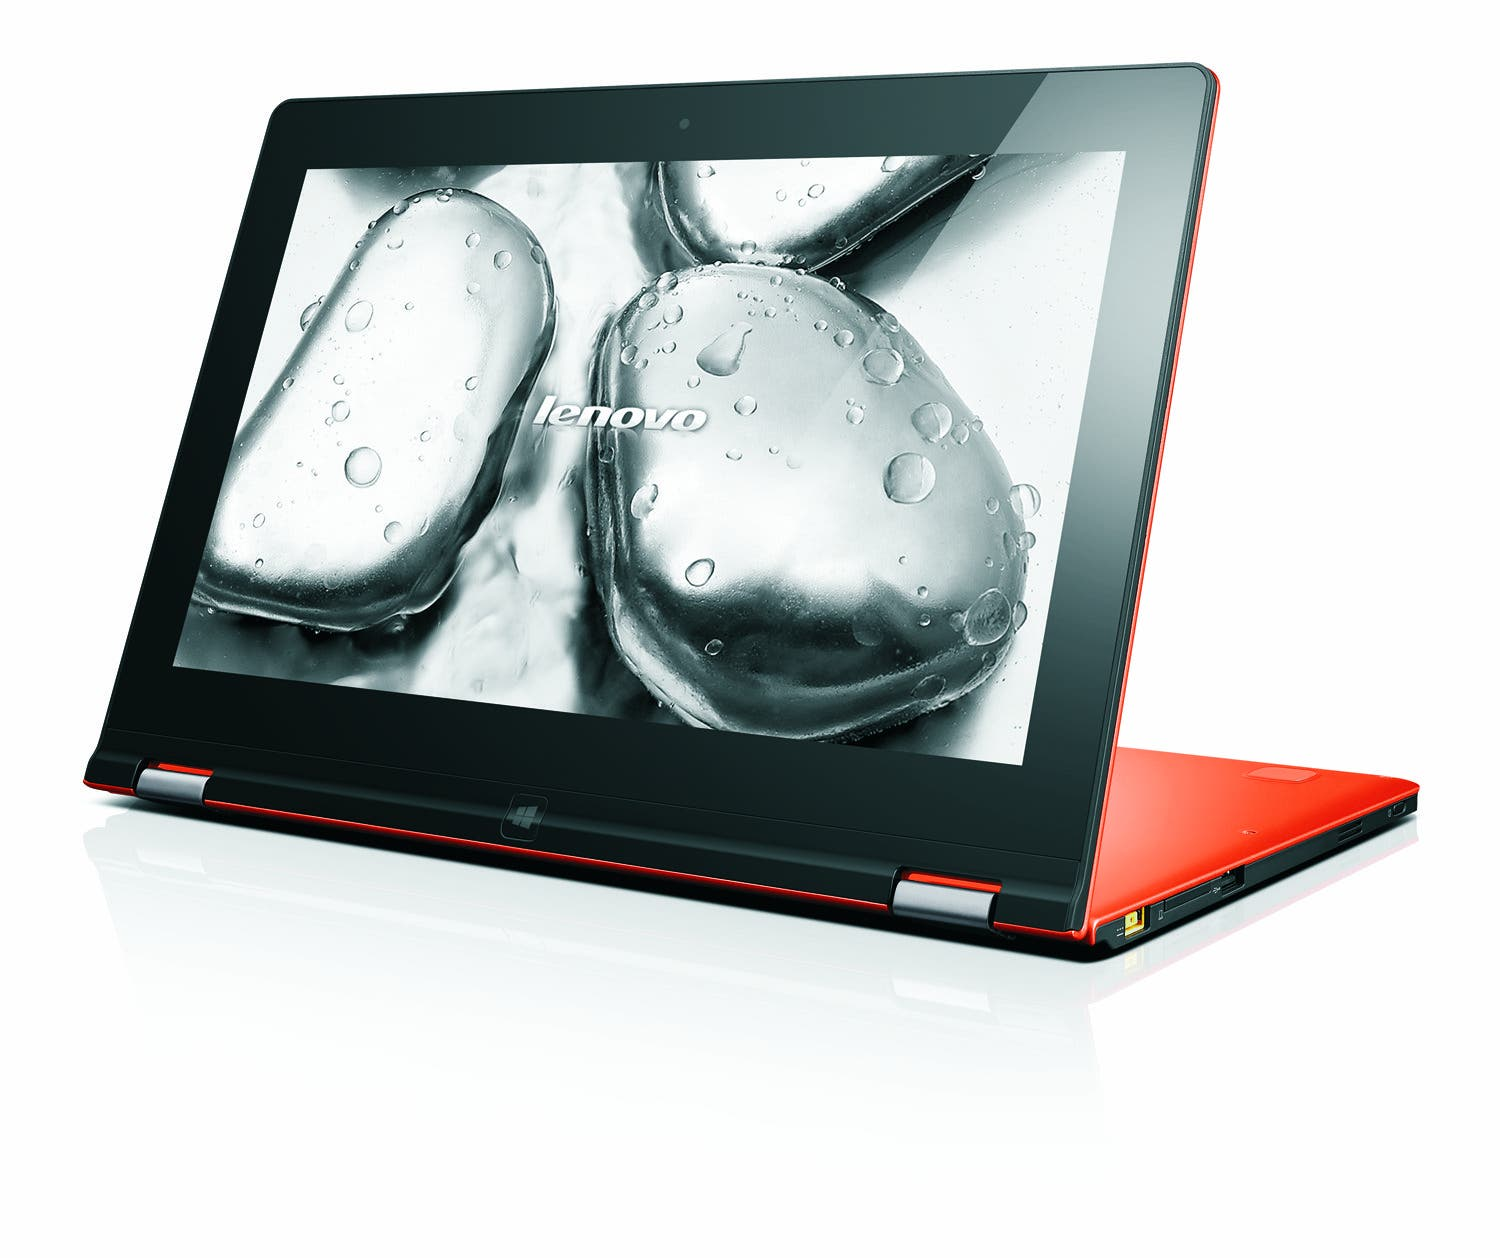 Ideapad Yoga 11s_Clementine Orange_Hero_06_RIVER Wallpaper